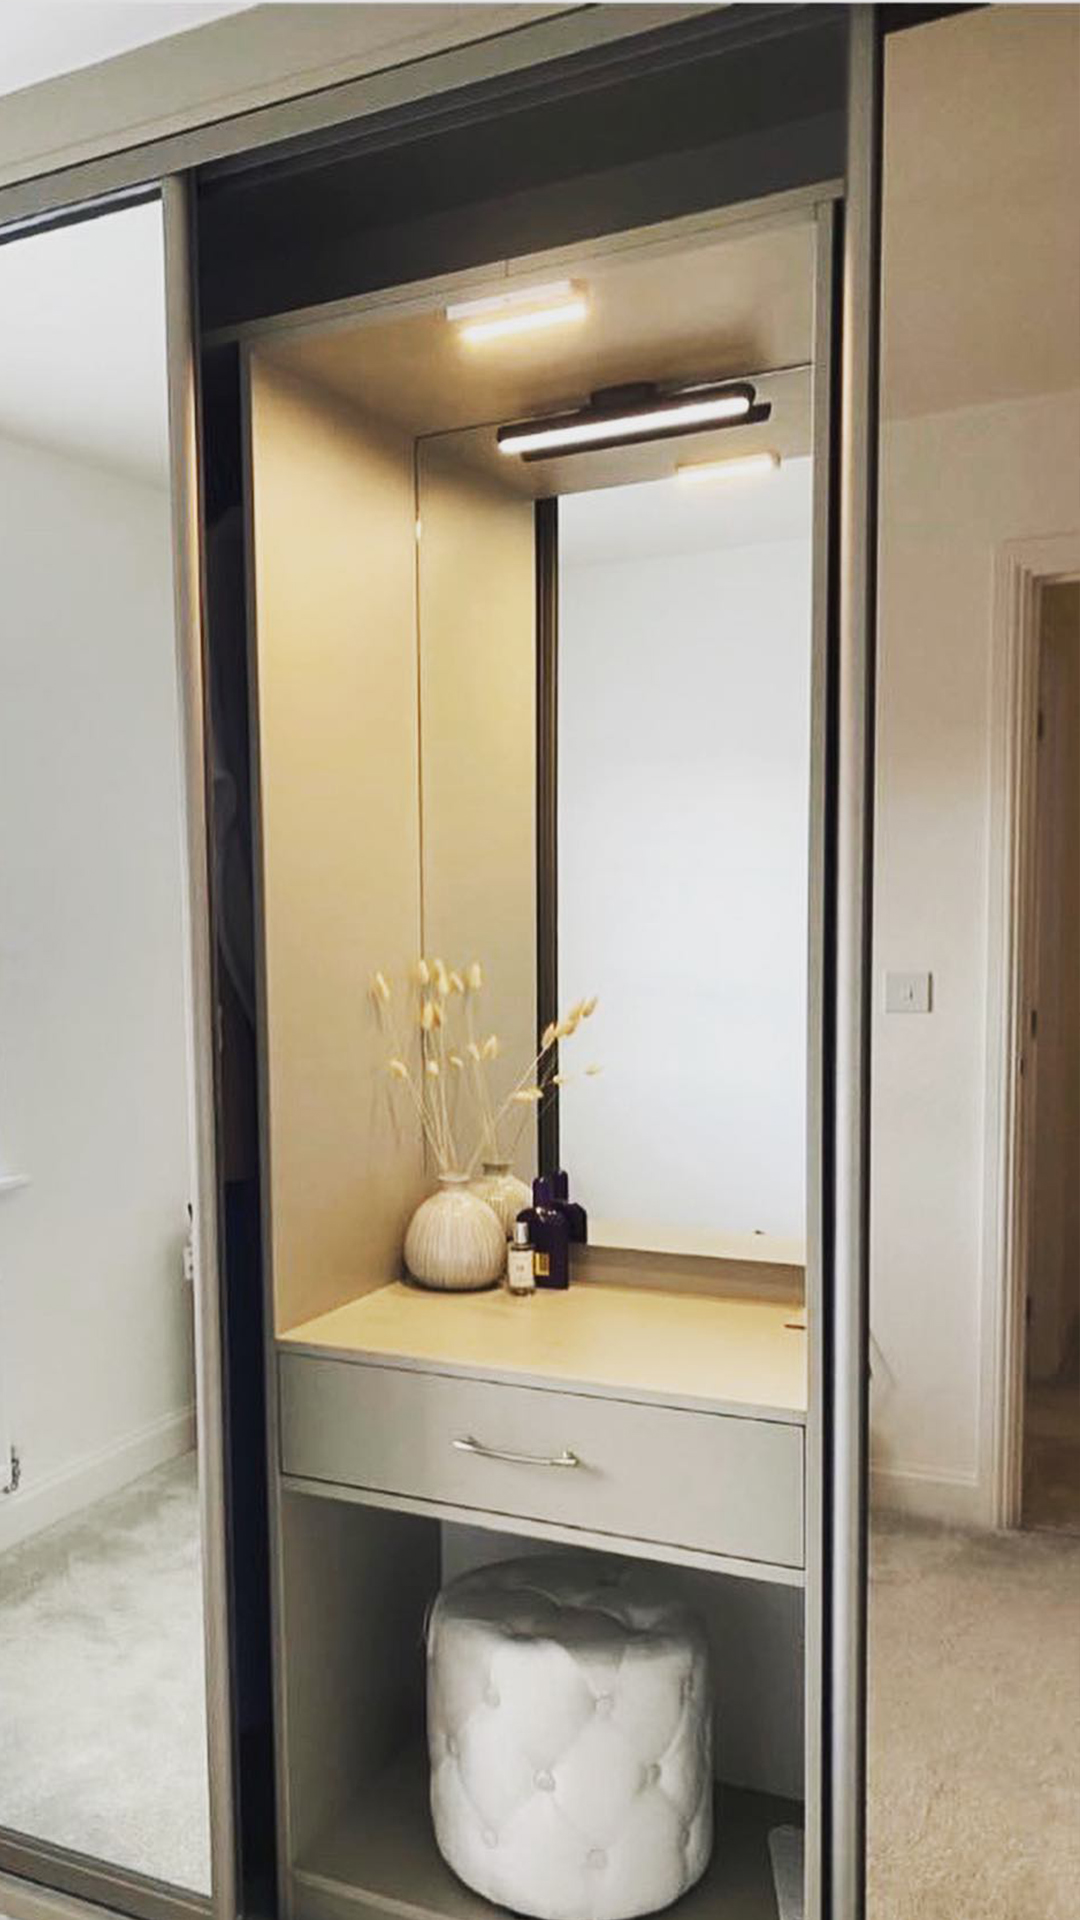 mirrored wardrobe dressing table